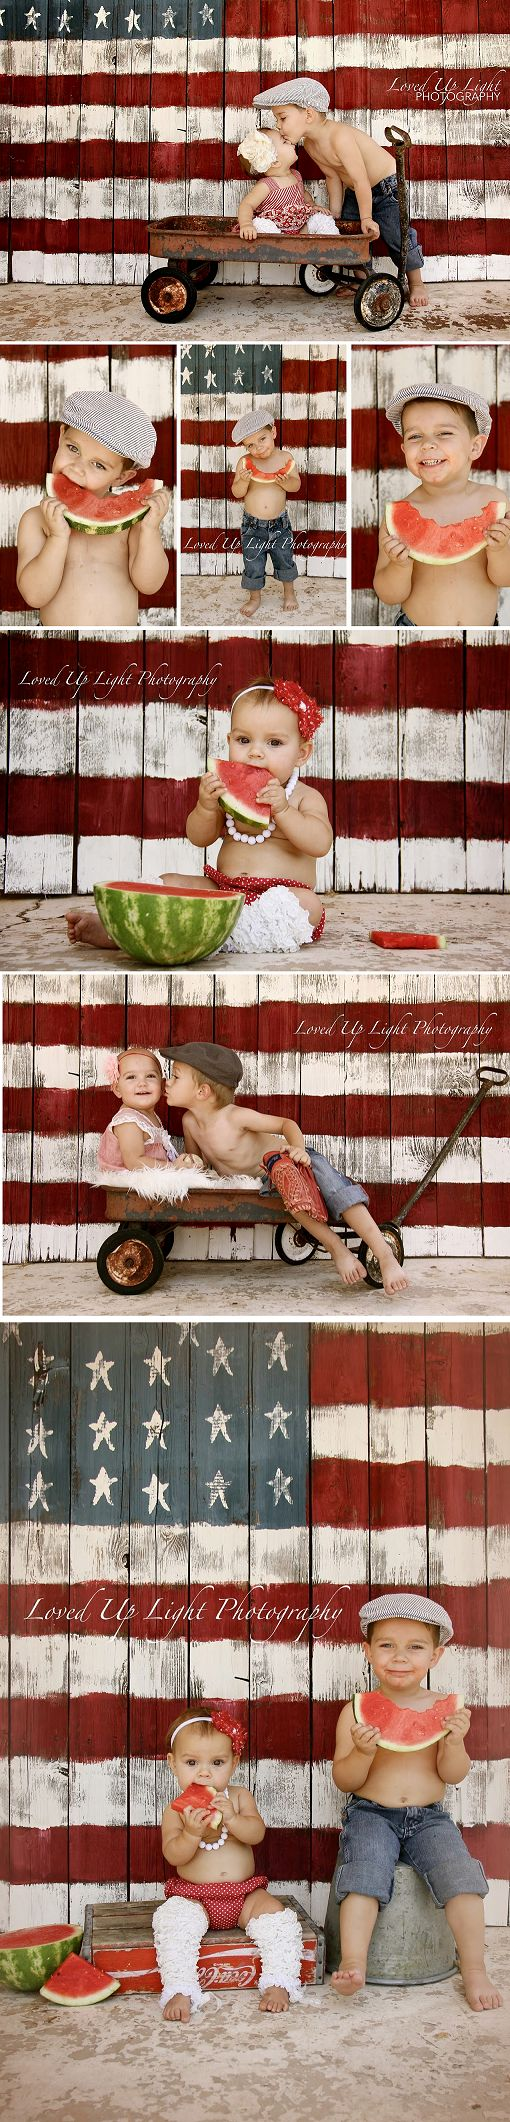 4th of july mini shoot Loved Up Light Photography: {Kids} Love this back drop!.. © Loved up Light Photography #4thofJuly #RedWhiteandBlue